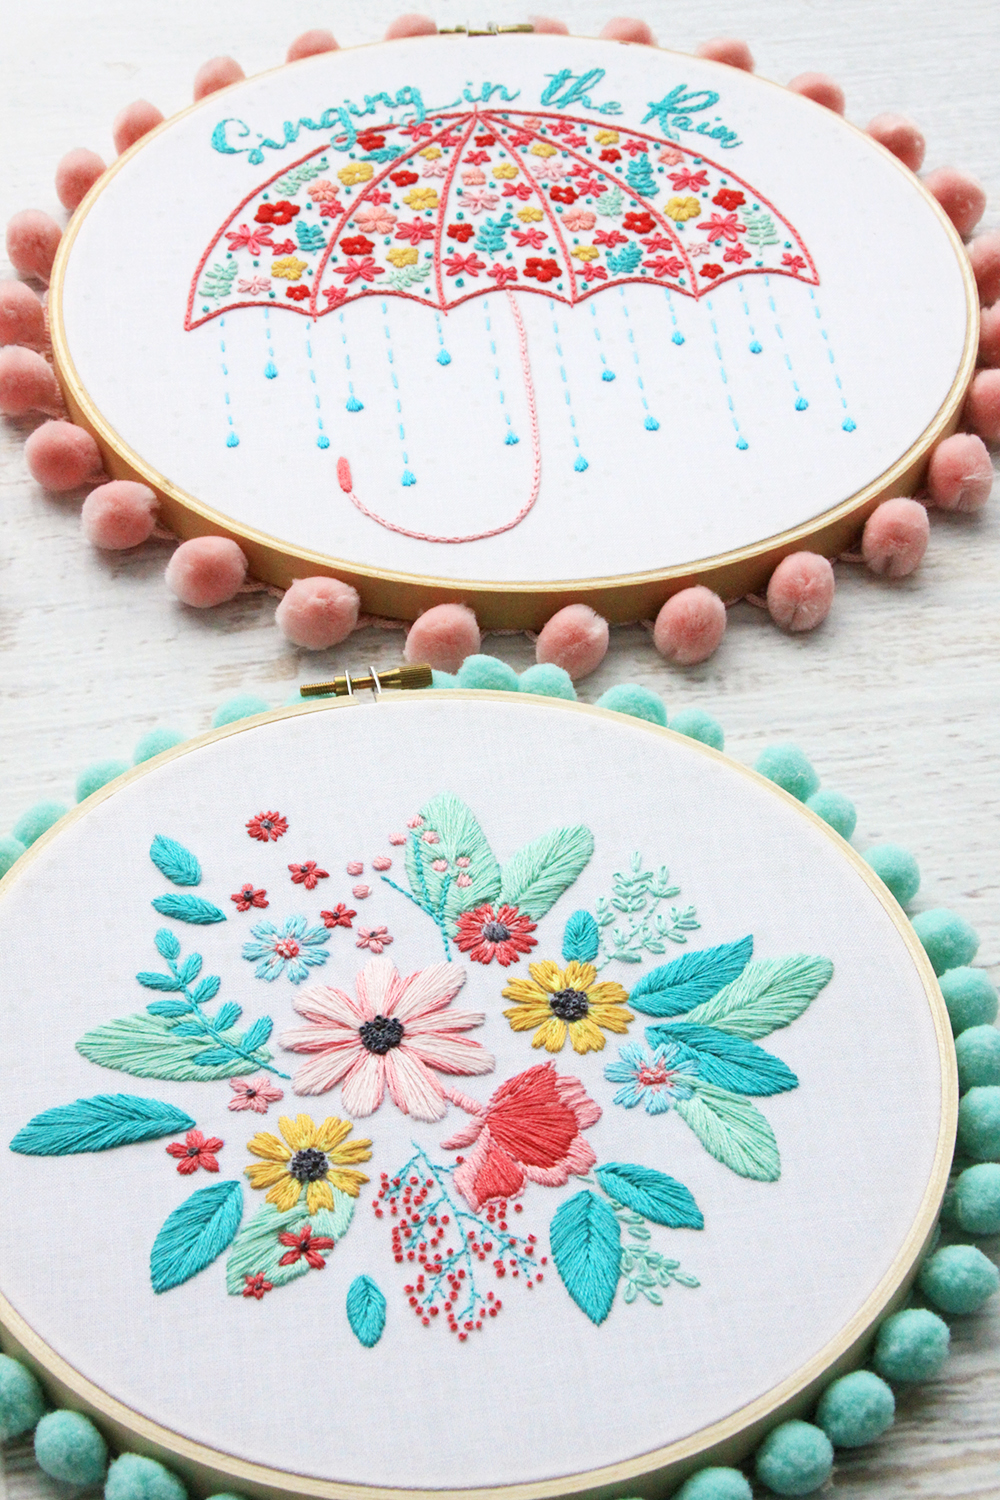 Singing in the Rain Embroidery Hoop Art